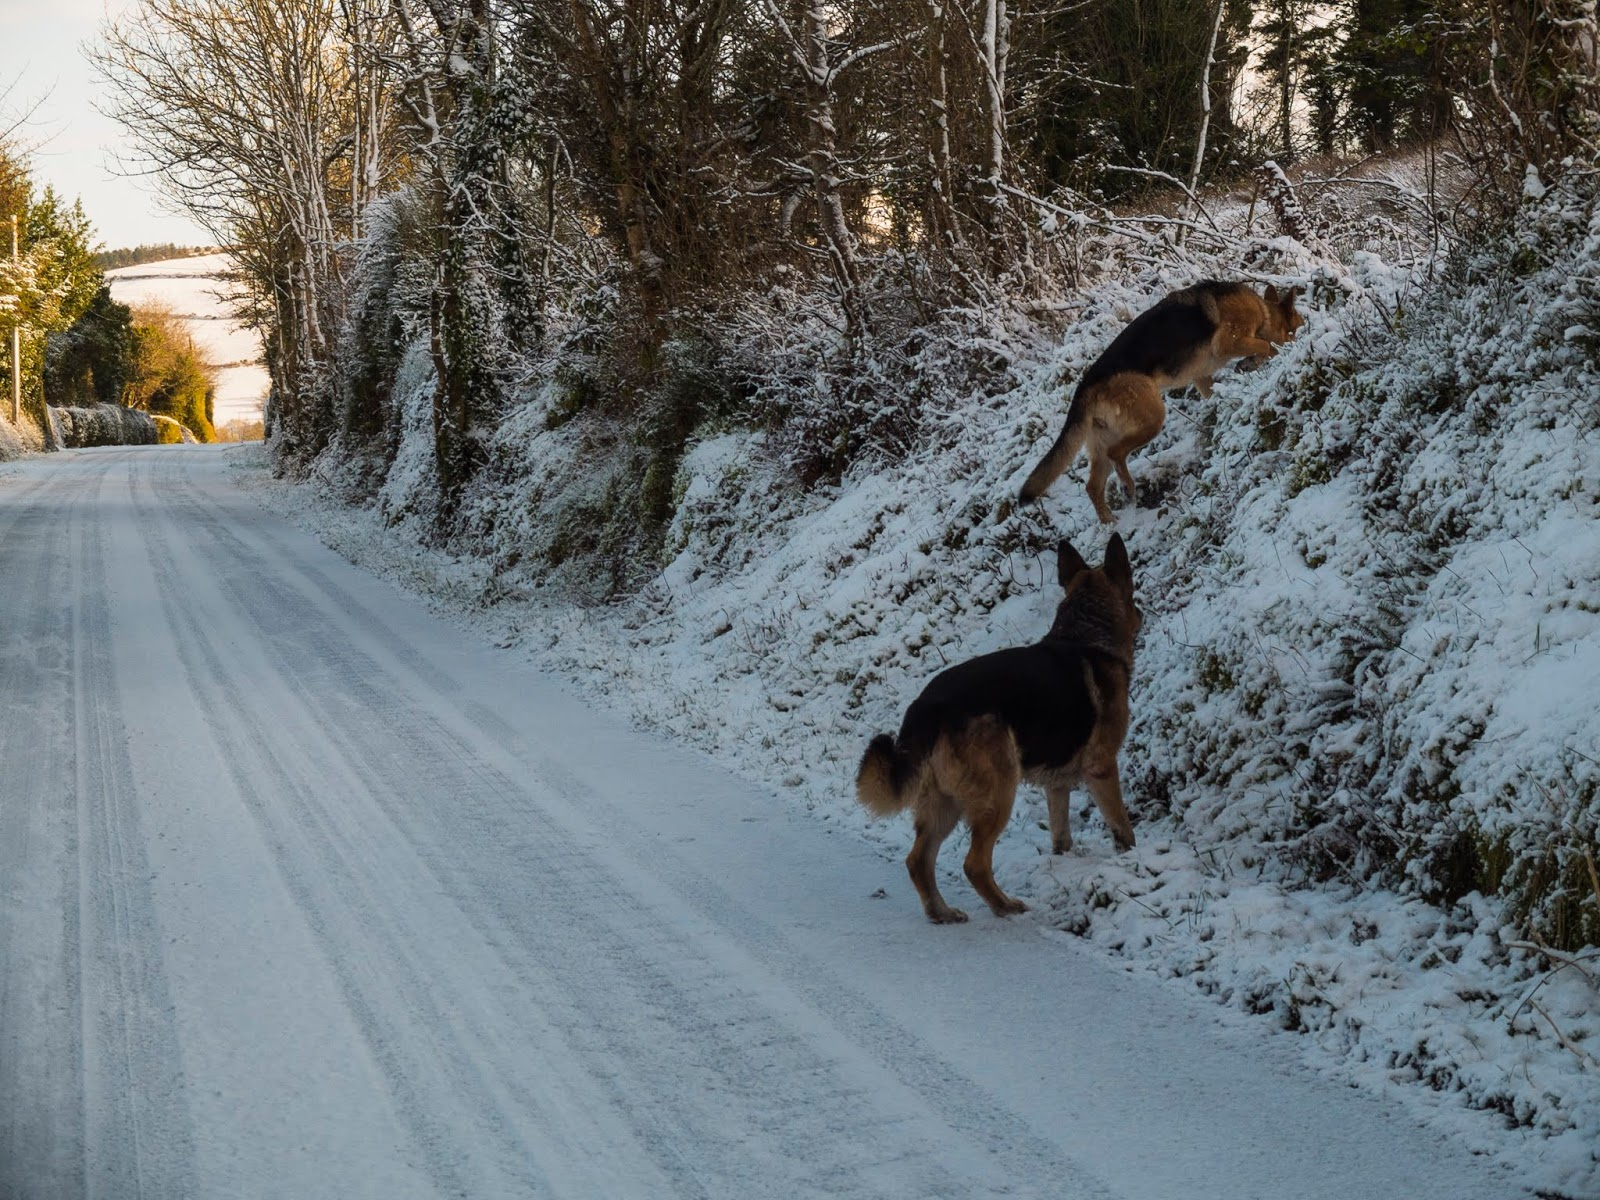 Two German Shepherds climbing over the ditch on a snowy morning.